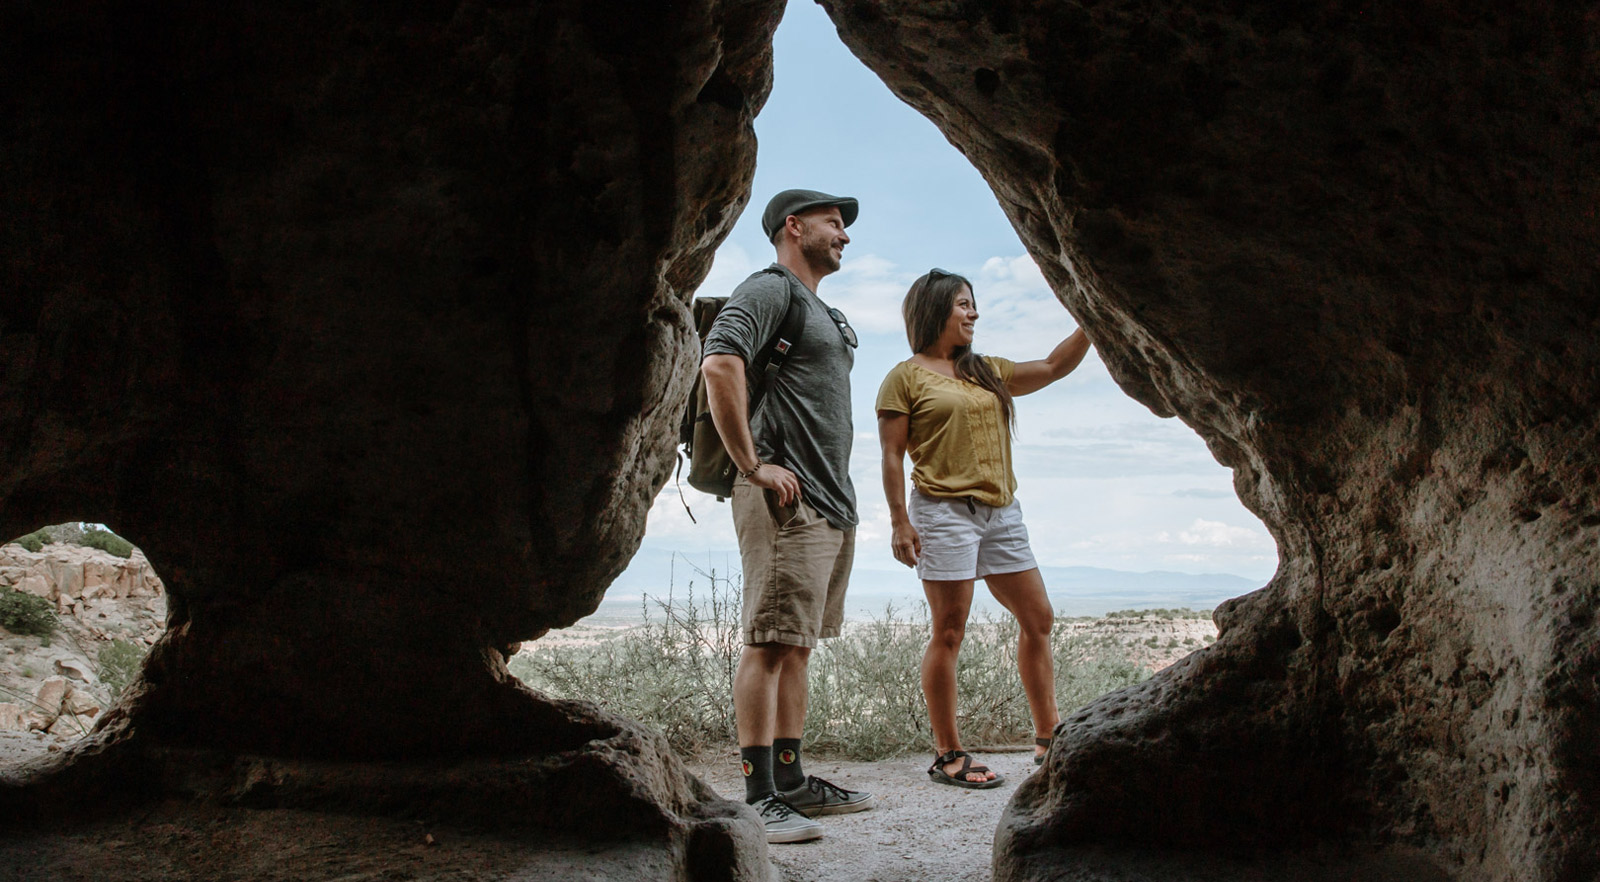 Hiking Tour in Bandelier National Monument